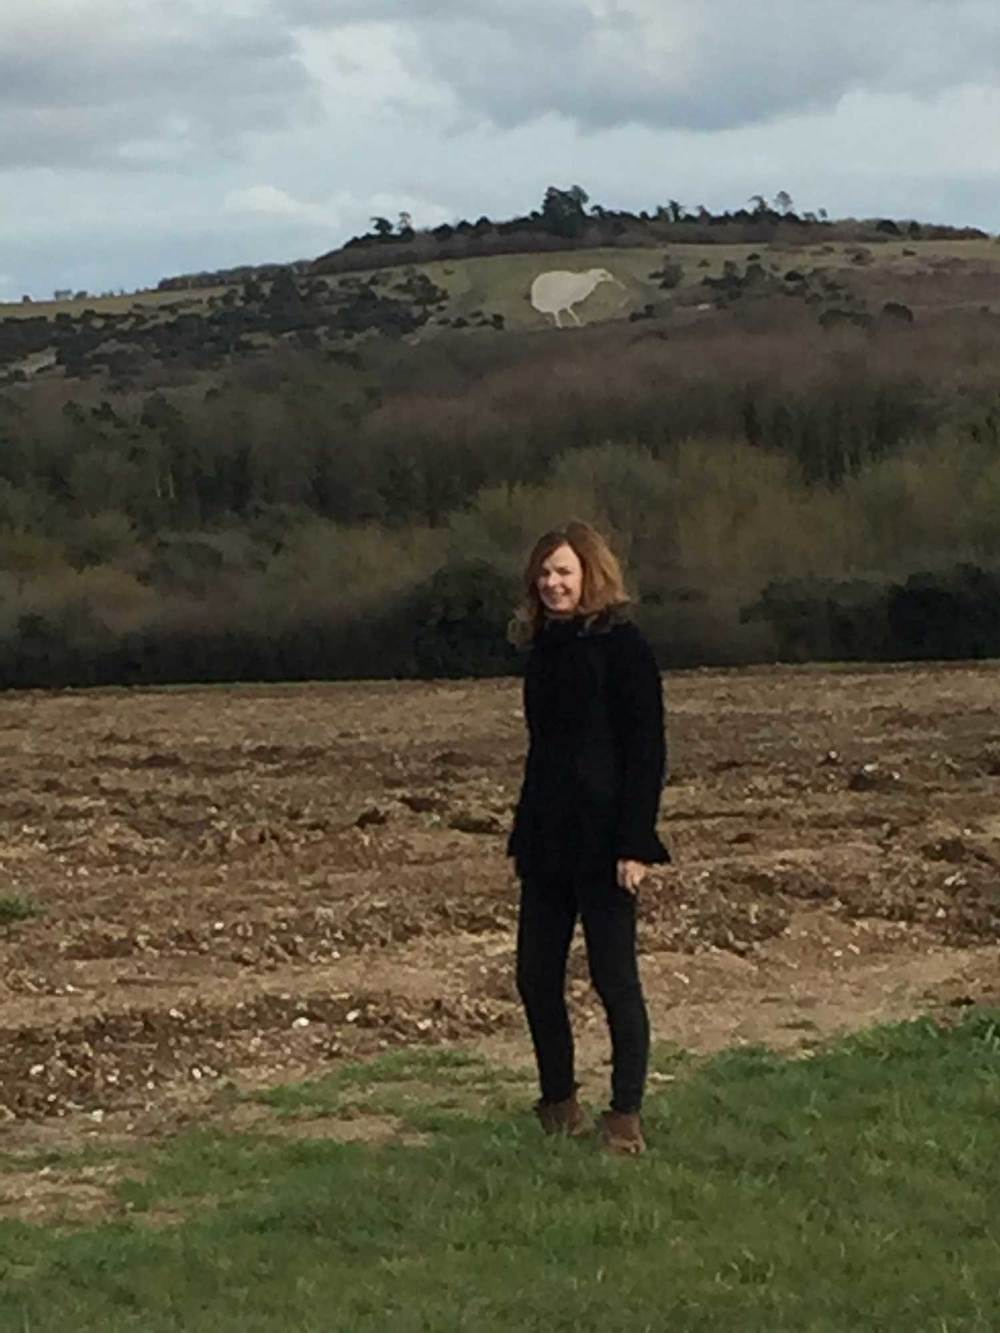 Arriving in Salisbury for my residency on the Salisbury Plain (background Bulford Kiwi, carved into the land by the NZ troops waiting to return home after WW1)